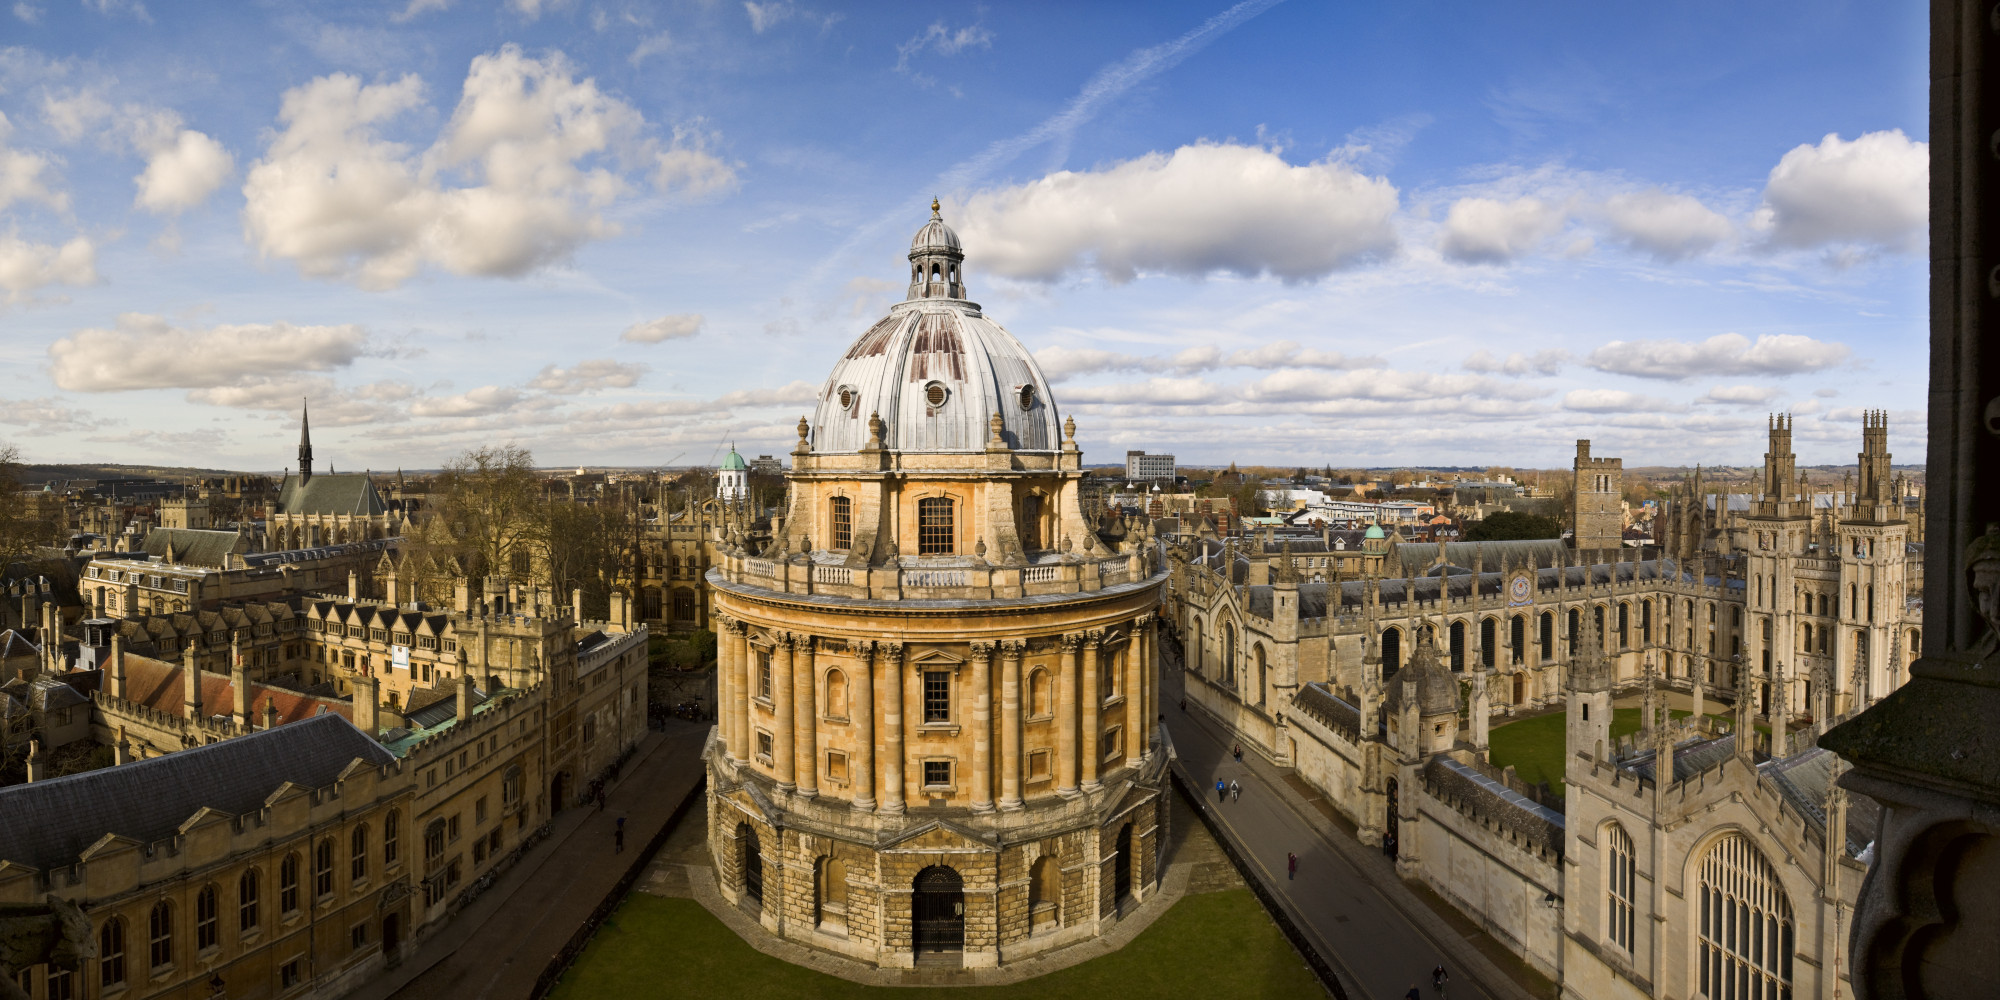 informally Oxford University or simply Oxford